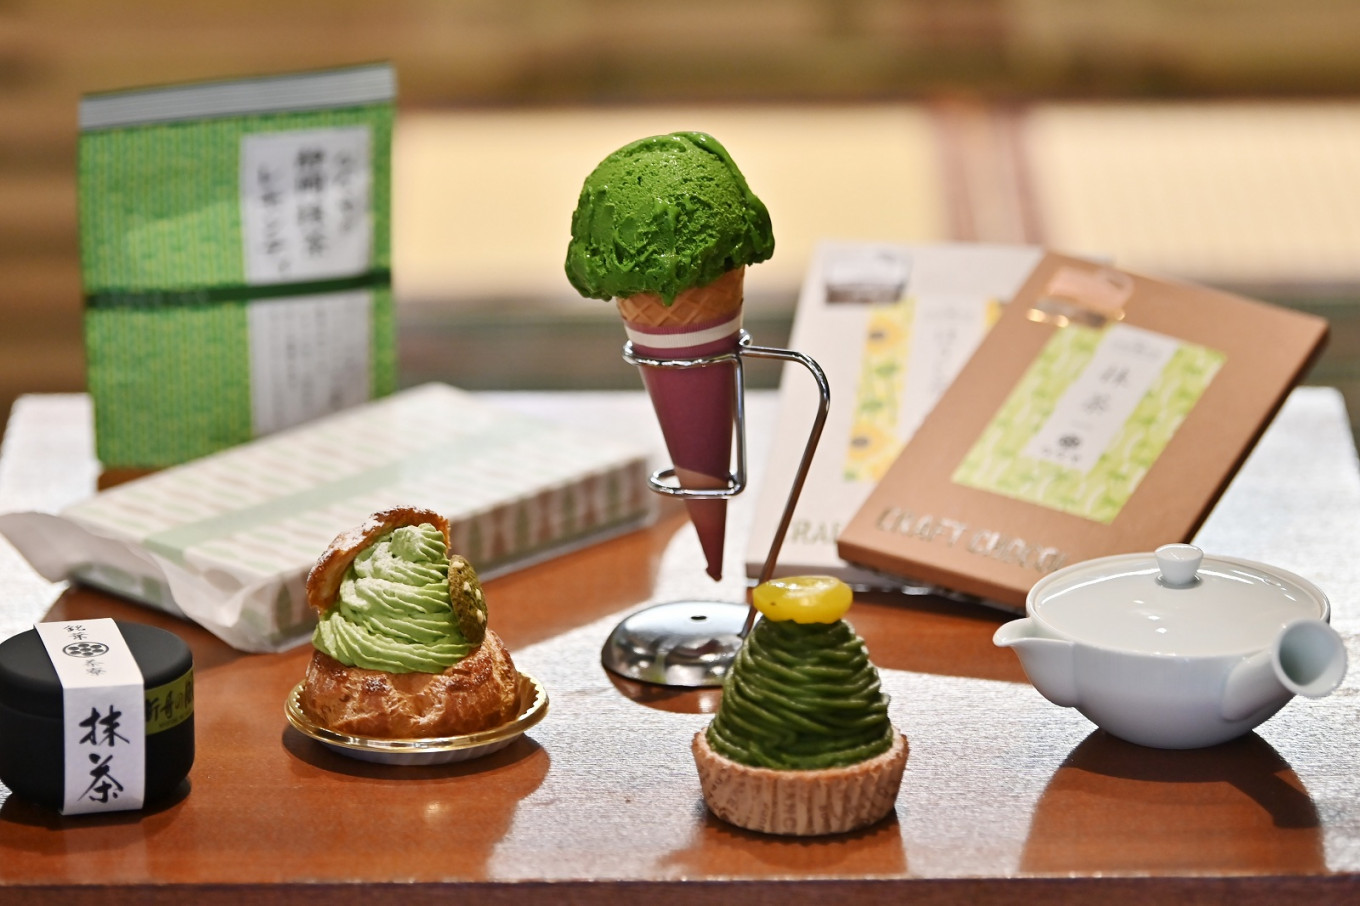 Can global matcha craze save Japan's tea industry?